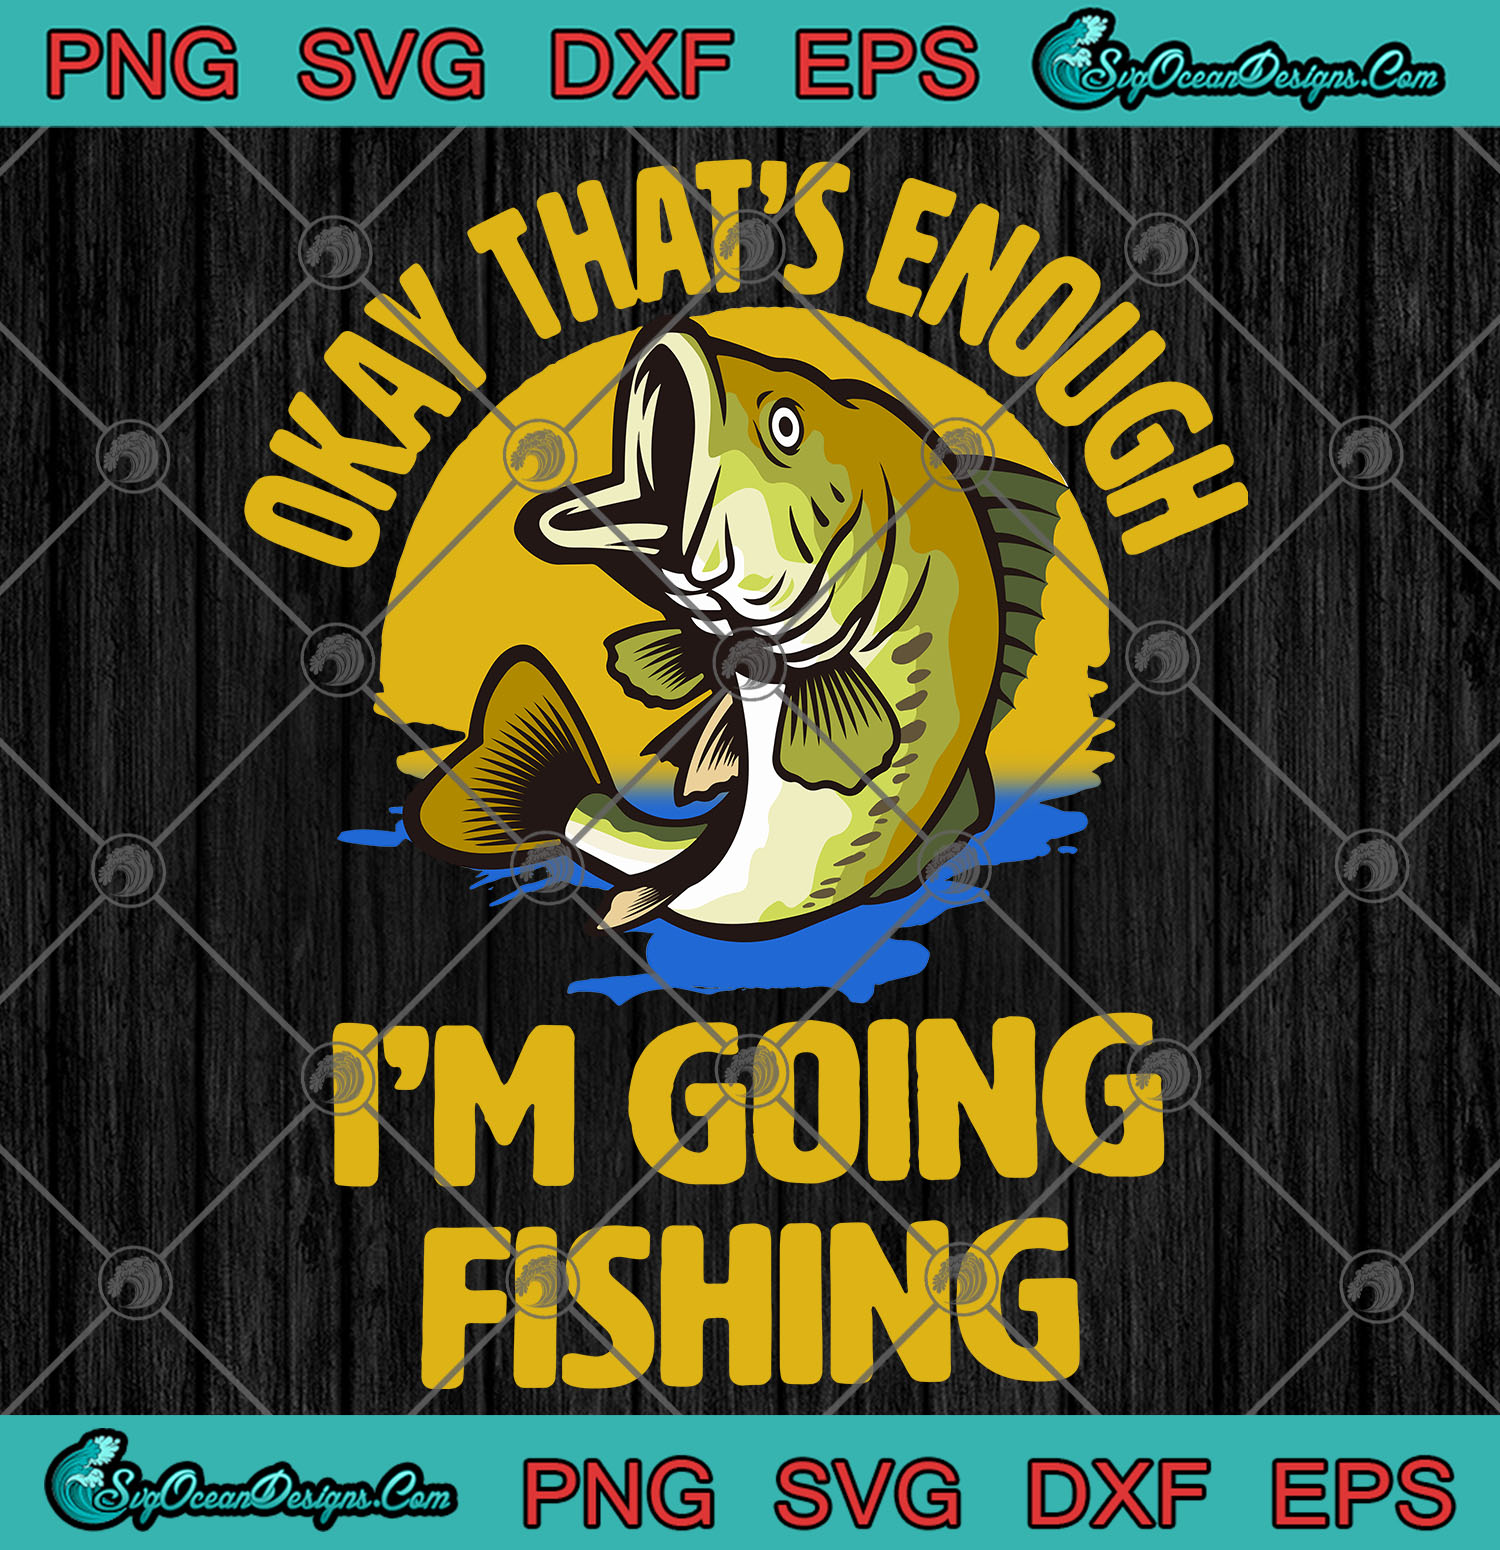 Okay That S Enough I M Going Fishing Svg Png Eps Dxf Fishing 2020 Cutting File Designs Digital Download